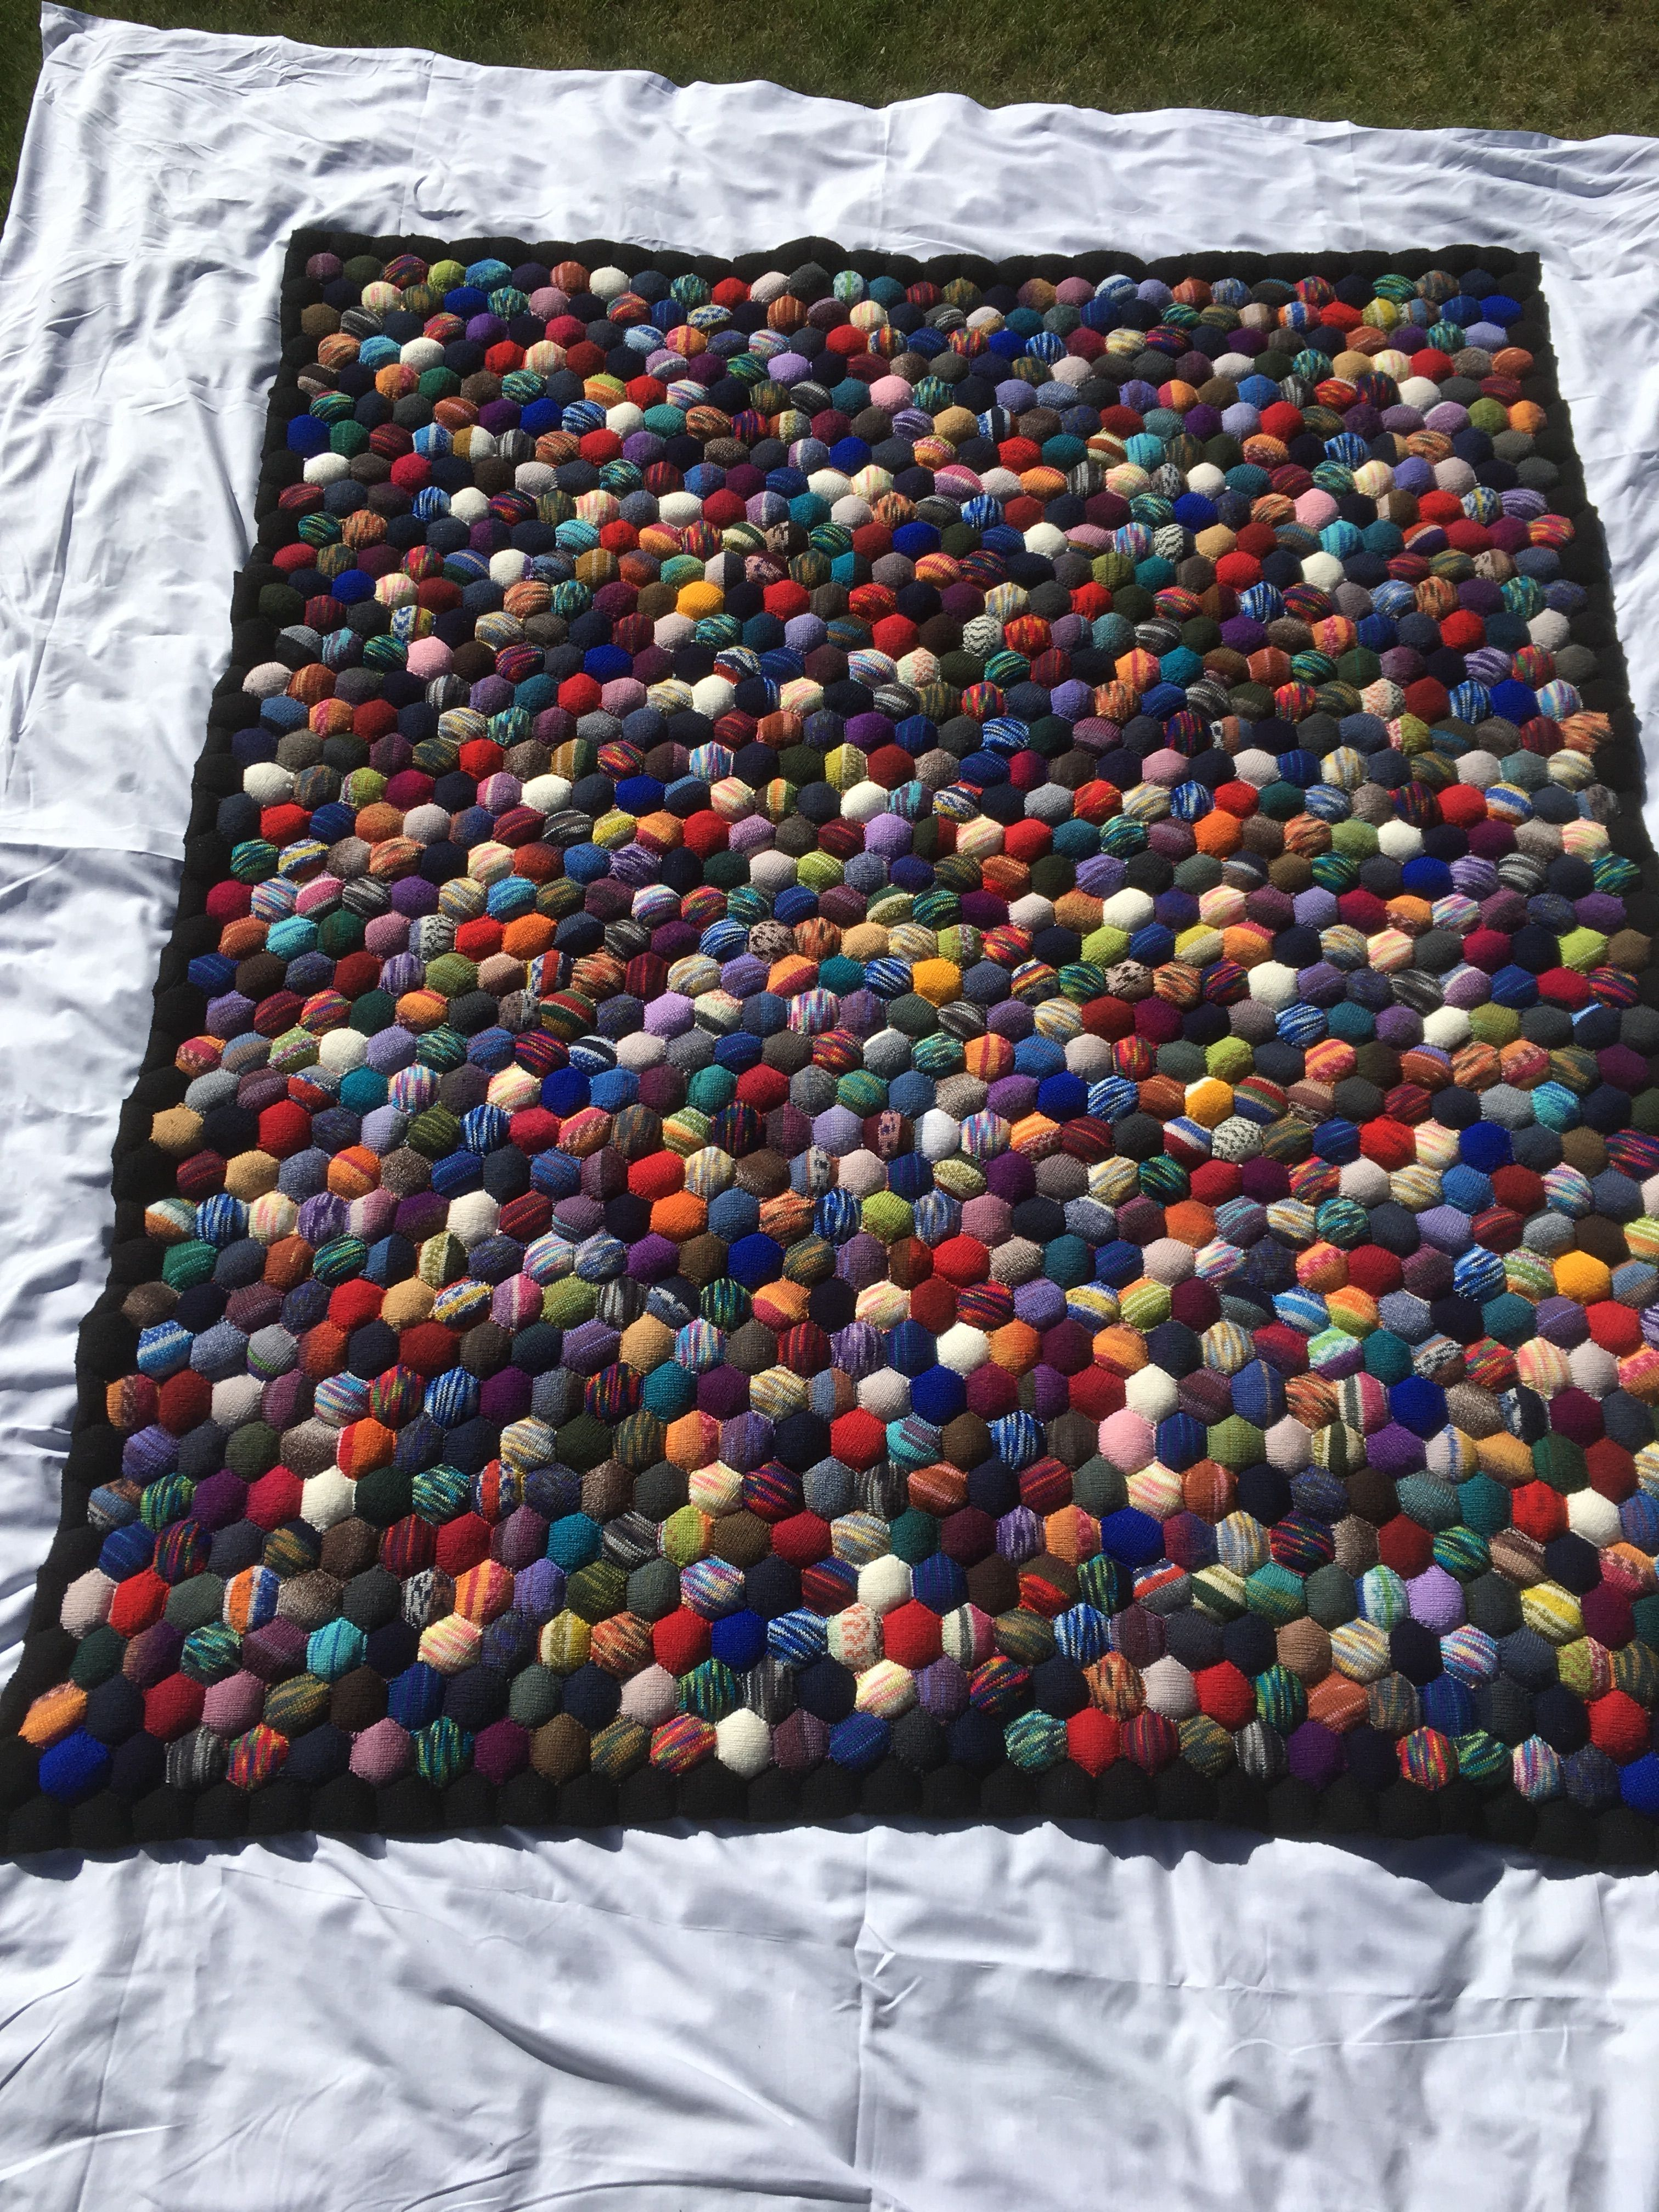 Completed Hexipuff Blanket Also Called Beekeepers Quilt 1200 Coloured Hexipuffs With Black Hexipuff Border Al Sewing Projects Cross Stitch Embroidery Knitting